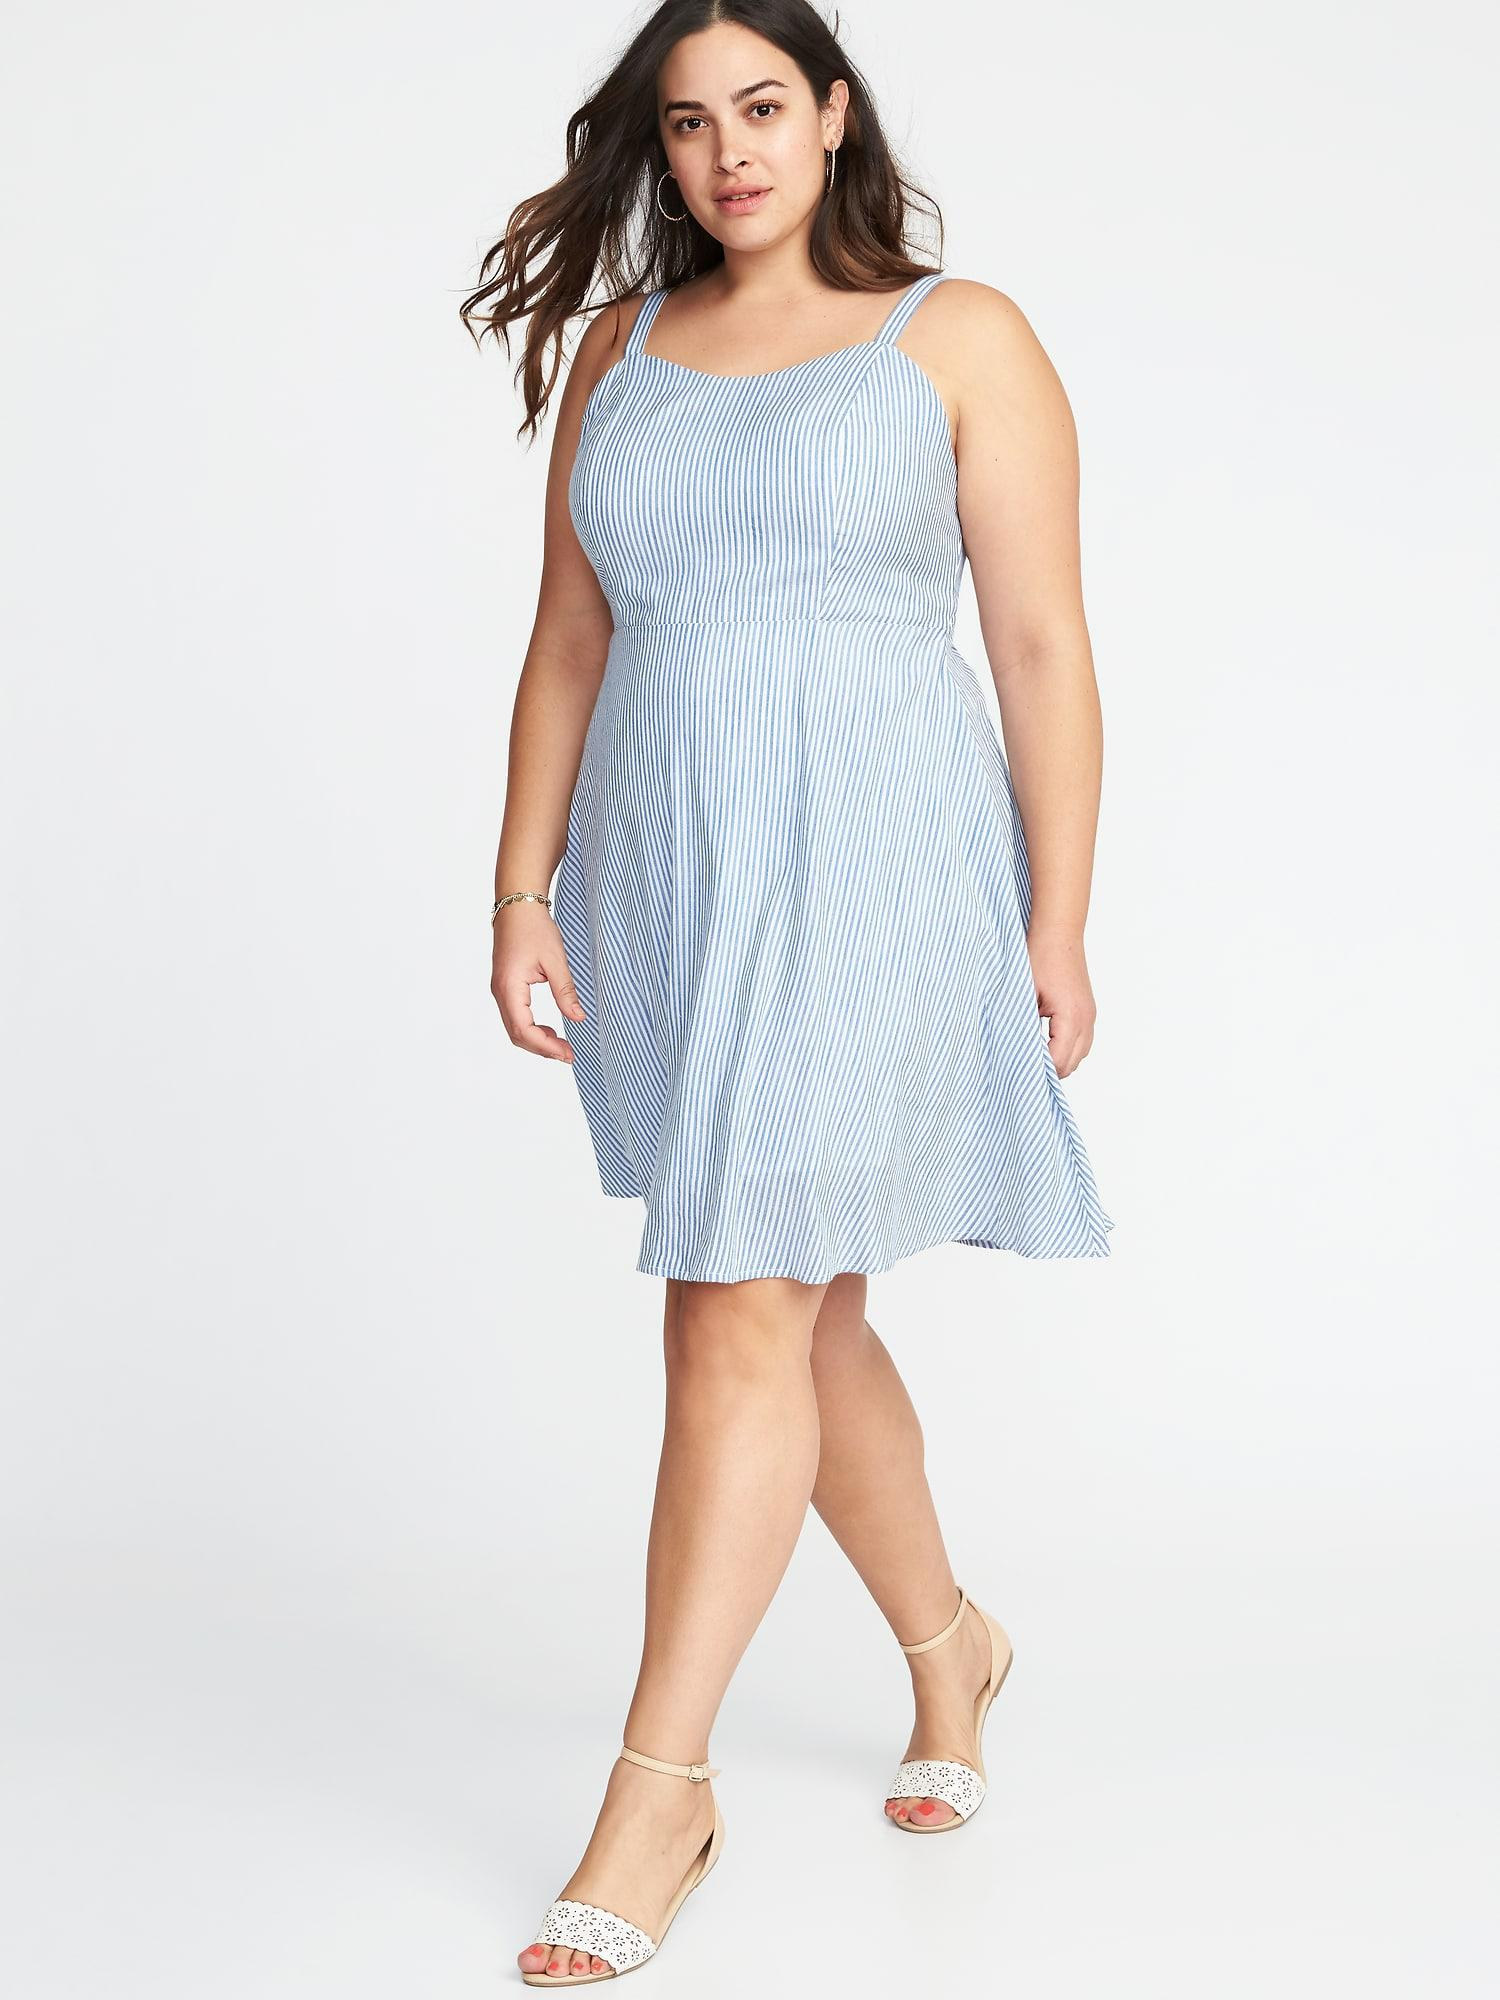 b71852738e1 Old Navy Plus-size Fit   Flare Cami Dress in Blue - Lyst